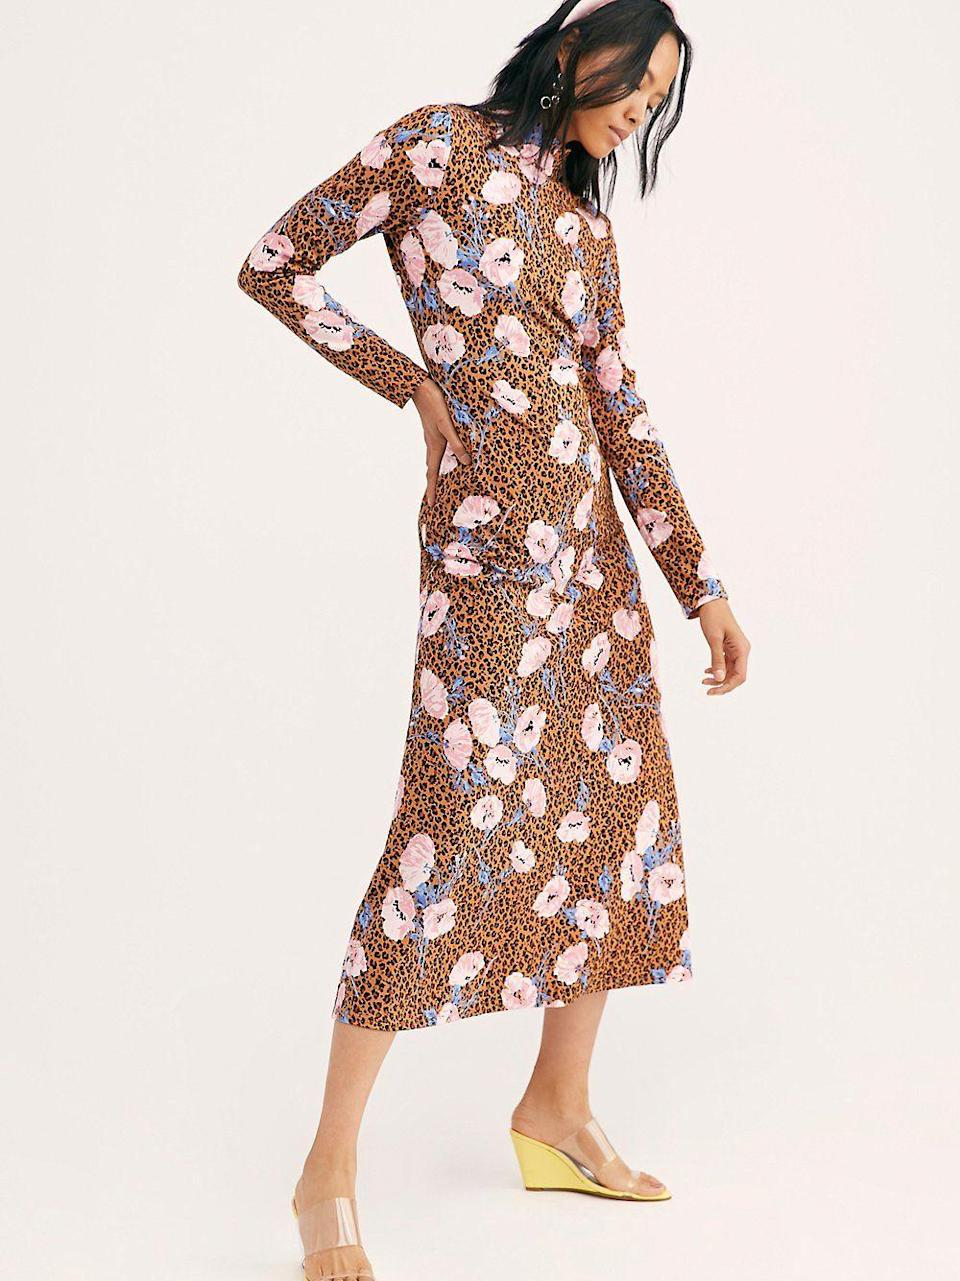 "<p><strong>Free People</strong></p><p>freepeople.com</p><p><strong>$148.00</strong></p><p><a href=""https://go.redirectingat.com?id=74968X1596630&url=https%3A%2F%2Fwww.freepeople.com%2Fshop%2Fretro-romance-midi-dress%2F&sref=https%3A%2F%2Fwww.cosmopolitan.com%2Fstyle-beauty%2Ffashion%2Fg32972452%2Finterview-outfit-ideas%2F"" rel=""nofollow noopener"" target=""_blank"" data-ylk=""slk:Shop Now"" class=""link rapid-noclick-resp"">Shop Now</a></p><p>Not all interviews are the same, so if you're going into one that's geared more towards fashion or a creative field, sometimes risks pay off. Wow them with a floral and leopard-print dress, yellow wedges, and a trendy headband to show them your personality. </p>"